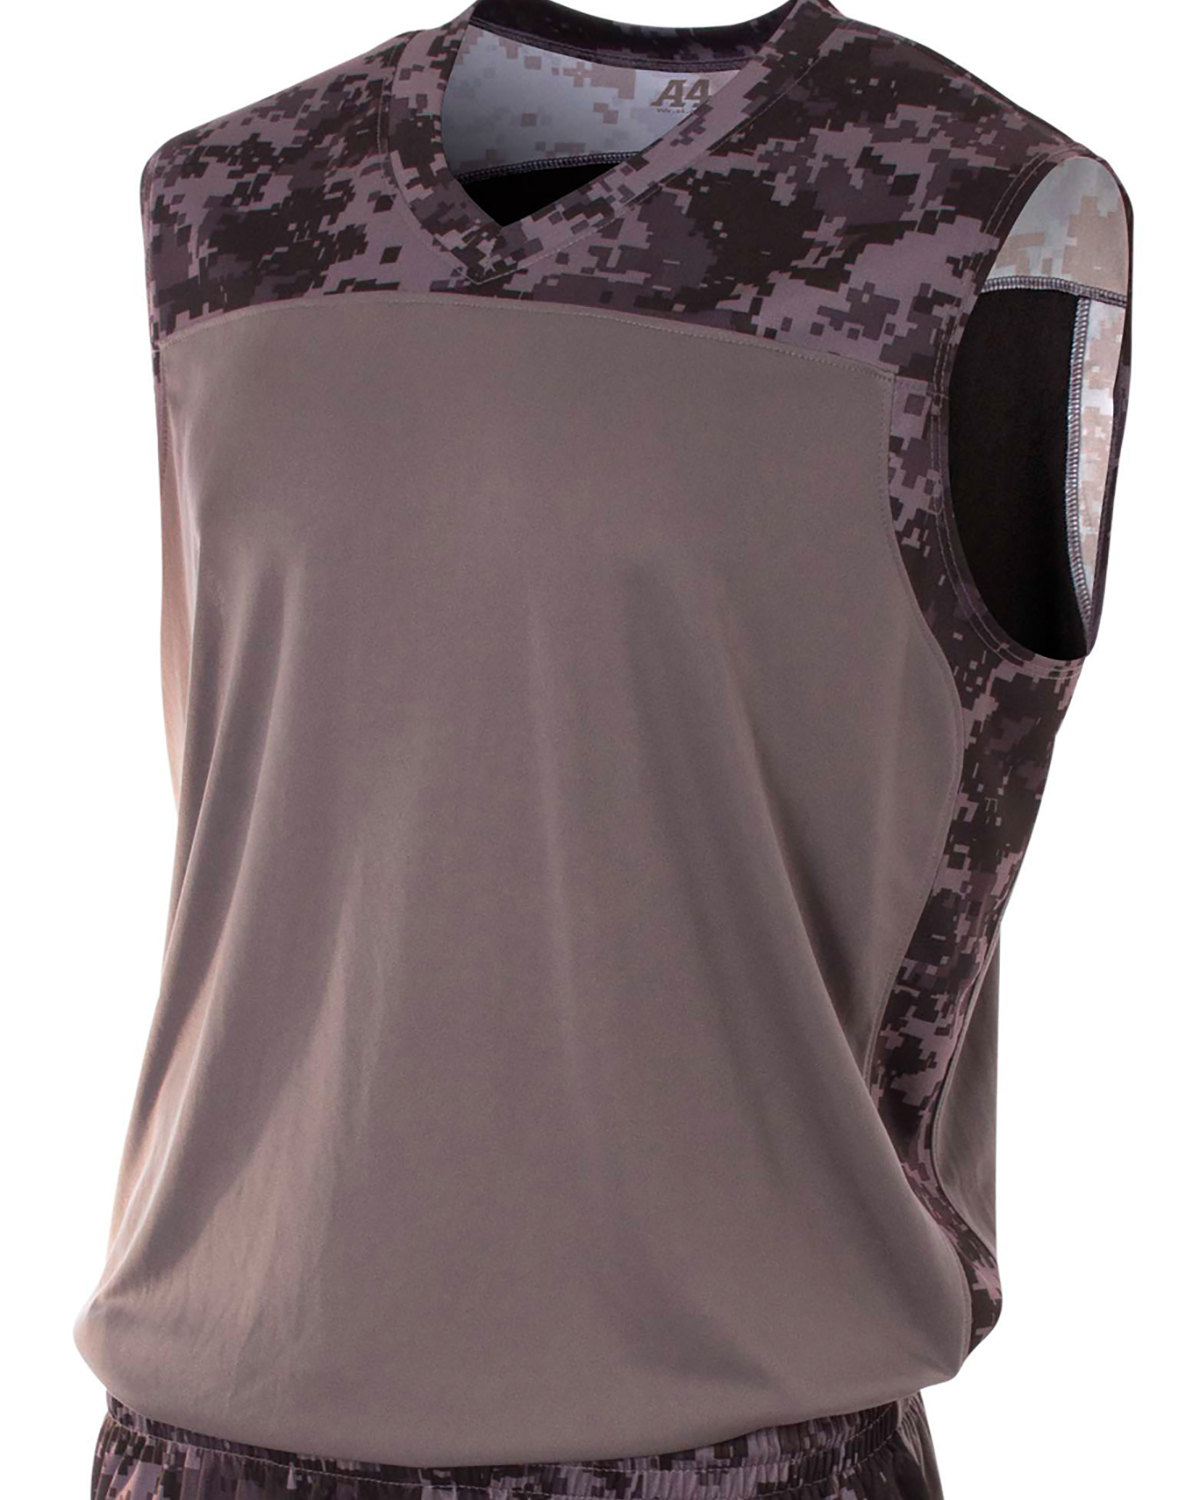 Adult Printed Camo Performance Muscle Shirt